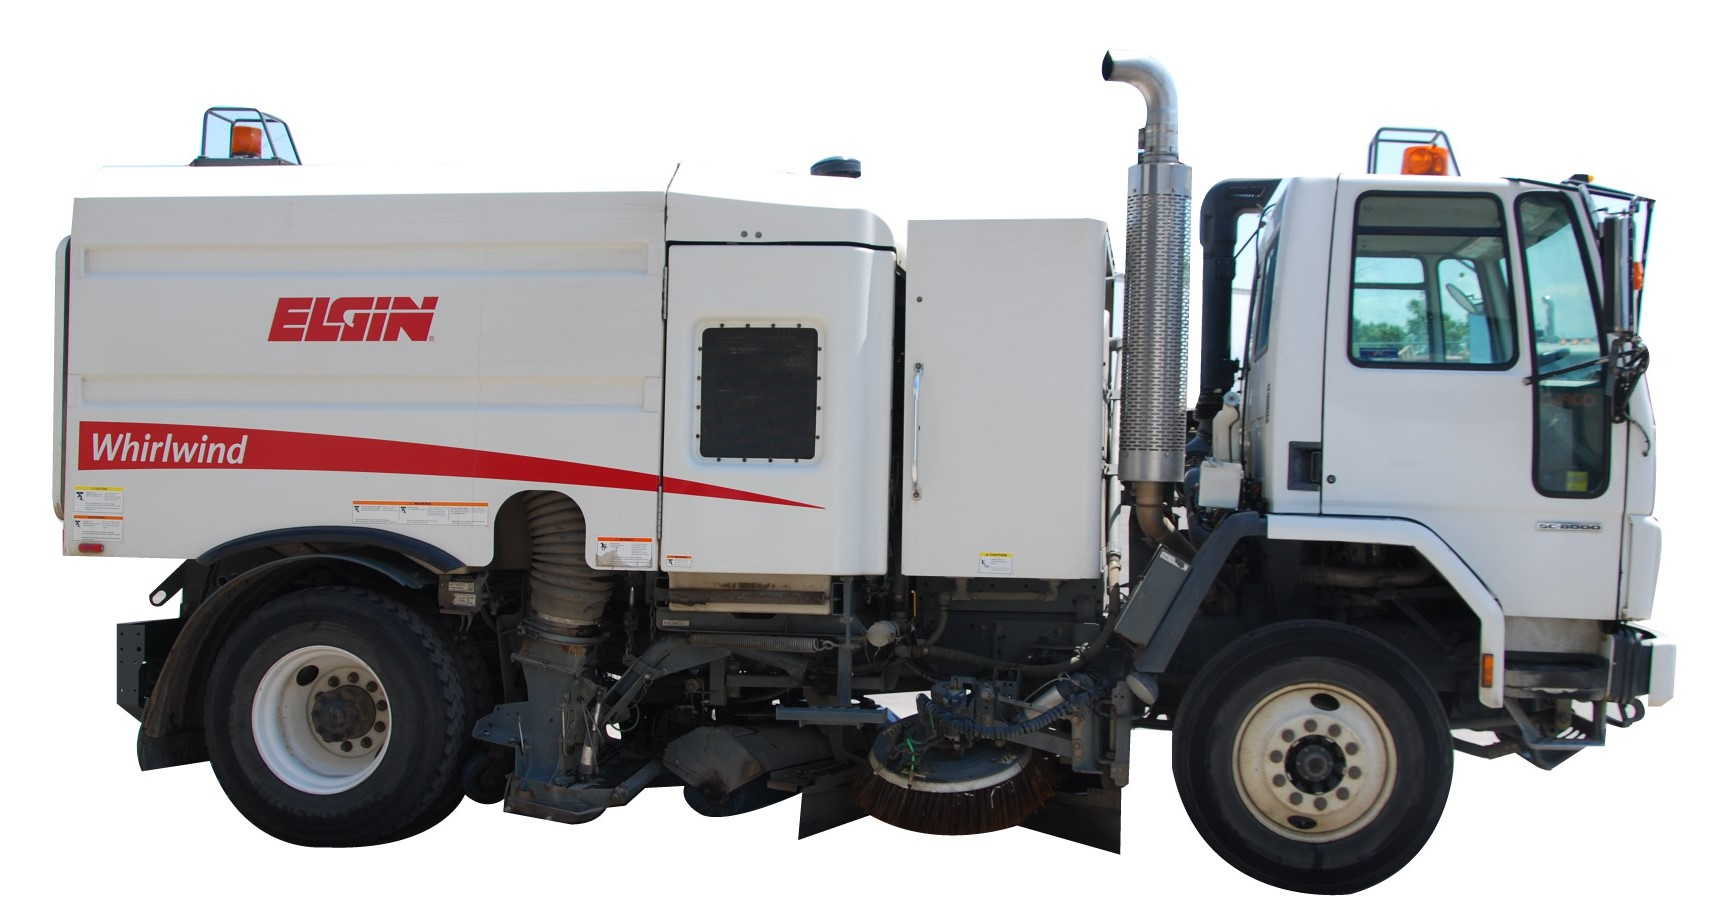 Call Yukon today to rent one of the high quality Sweepers.